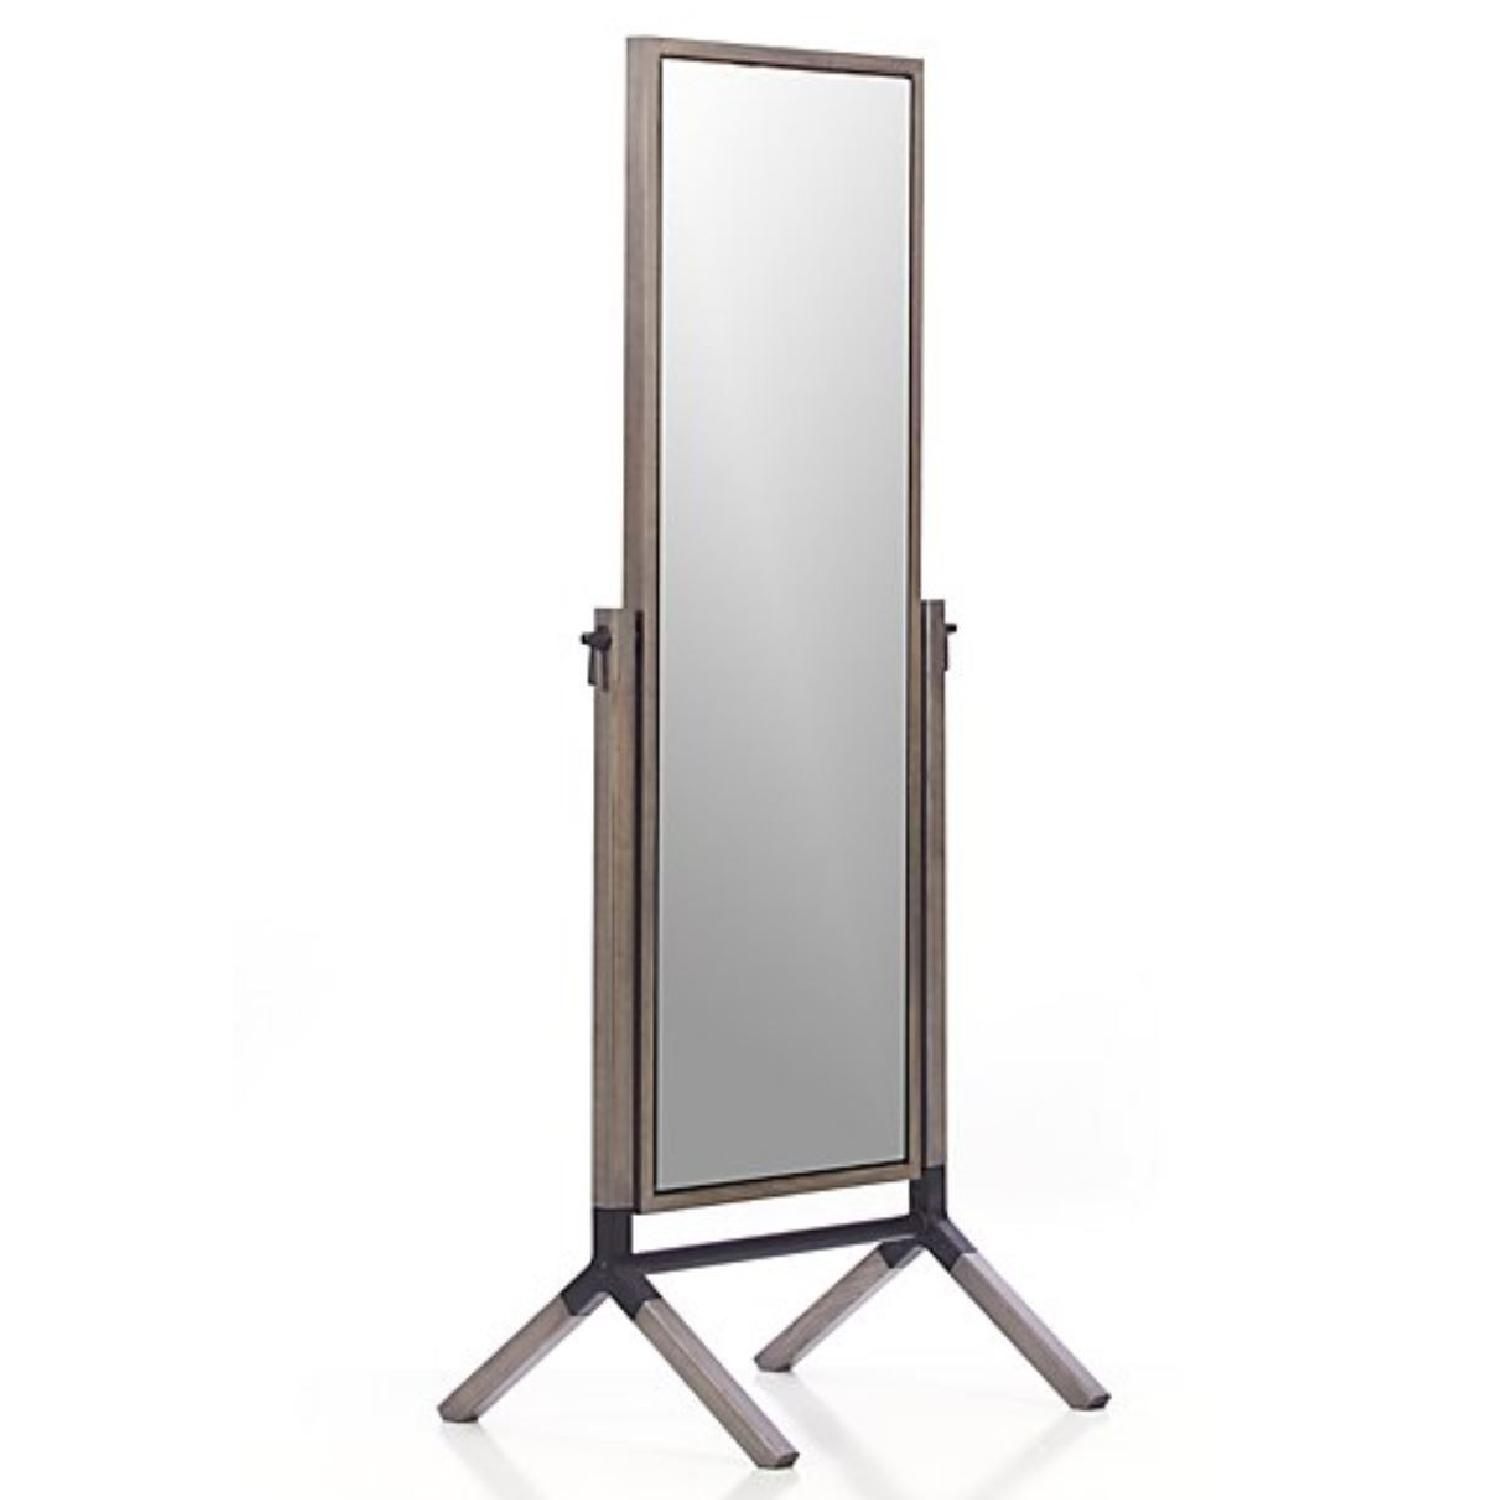 Crate & Barrel Malvern Grey Cheval Floor Mirror - image-0